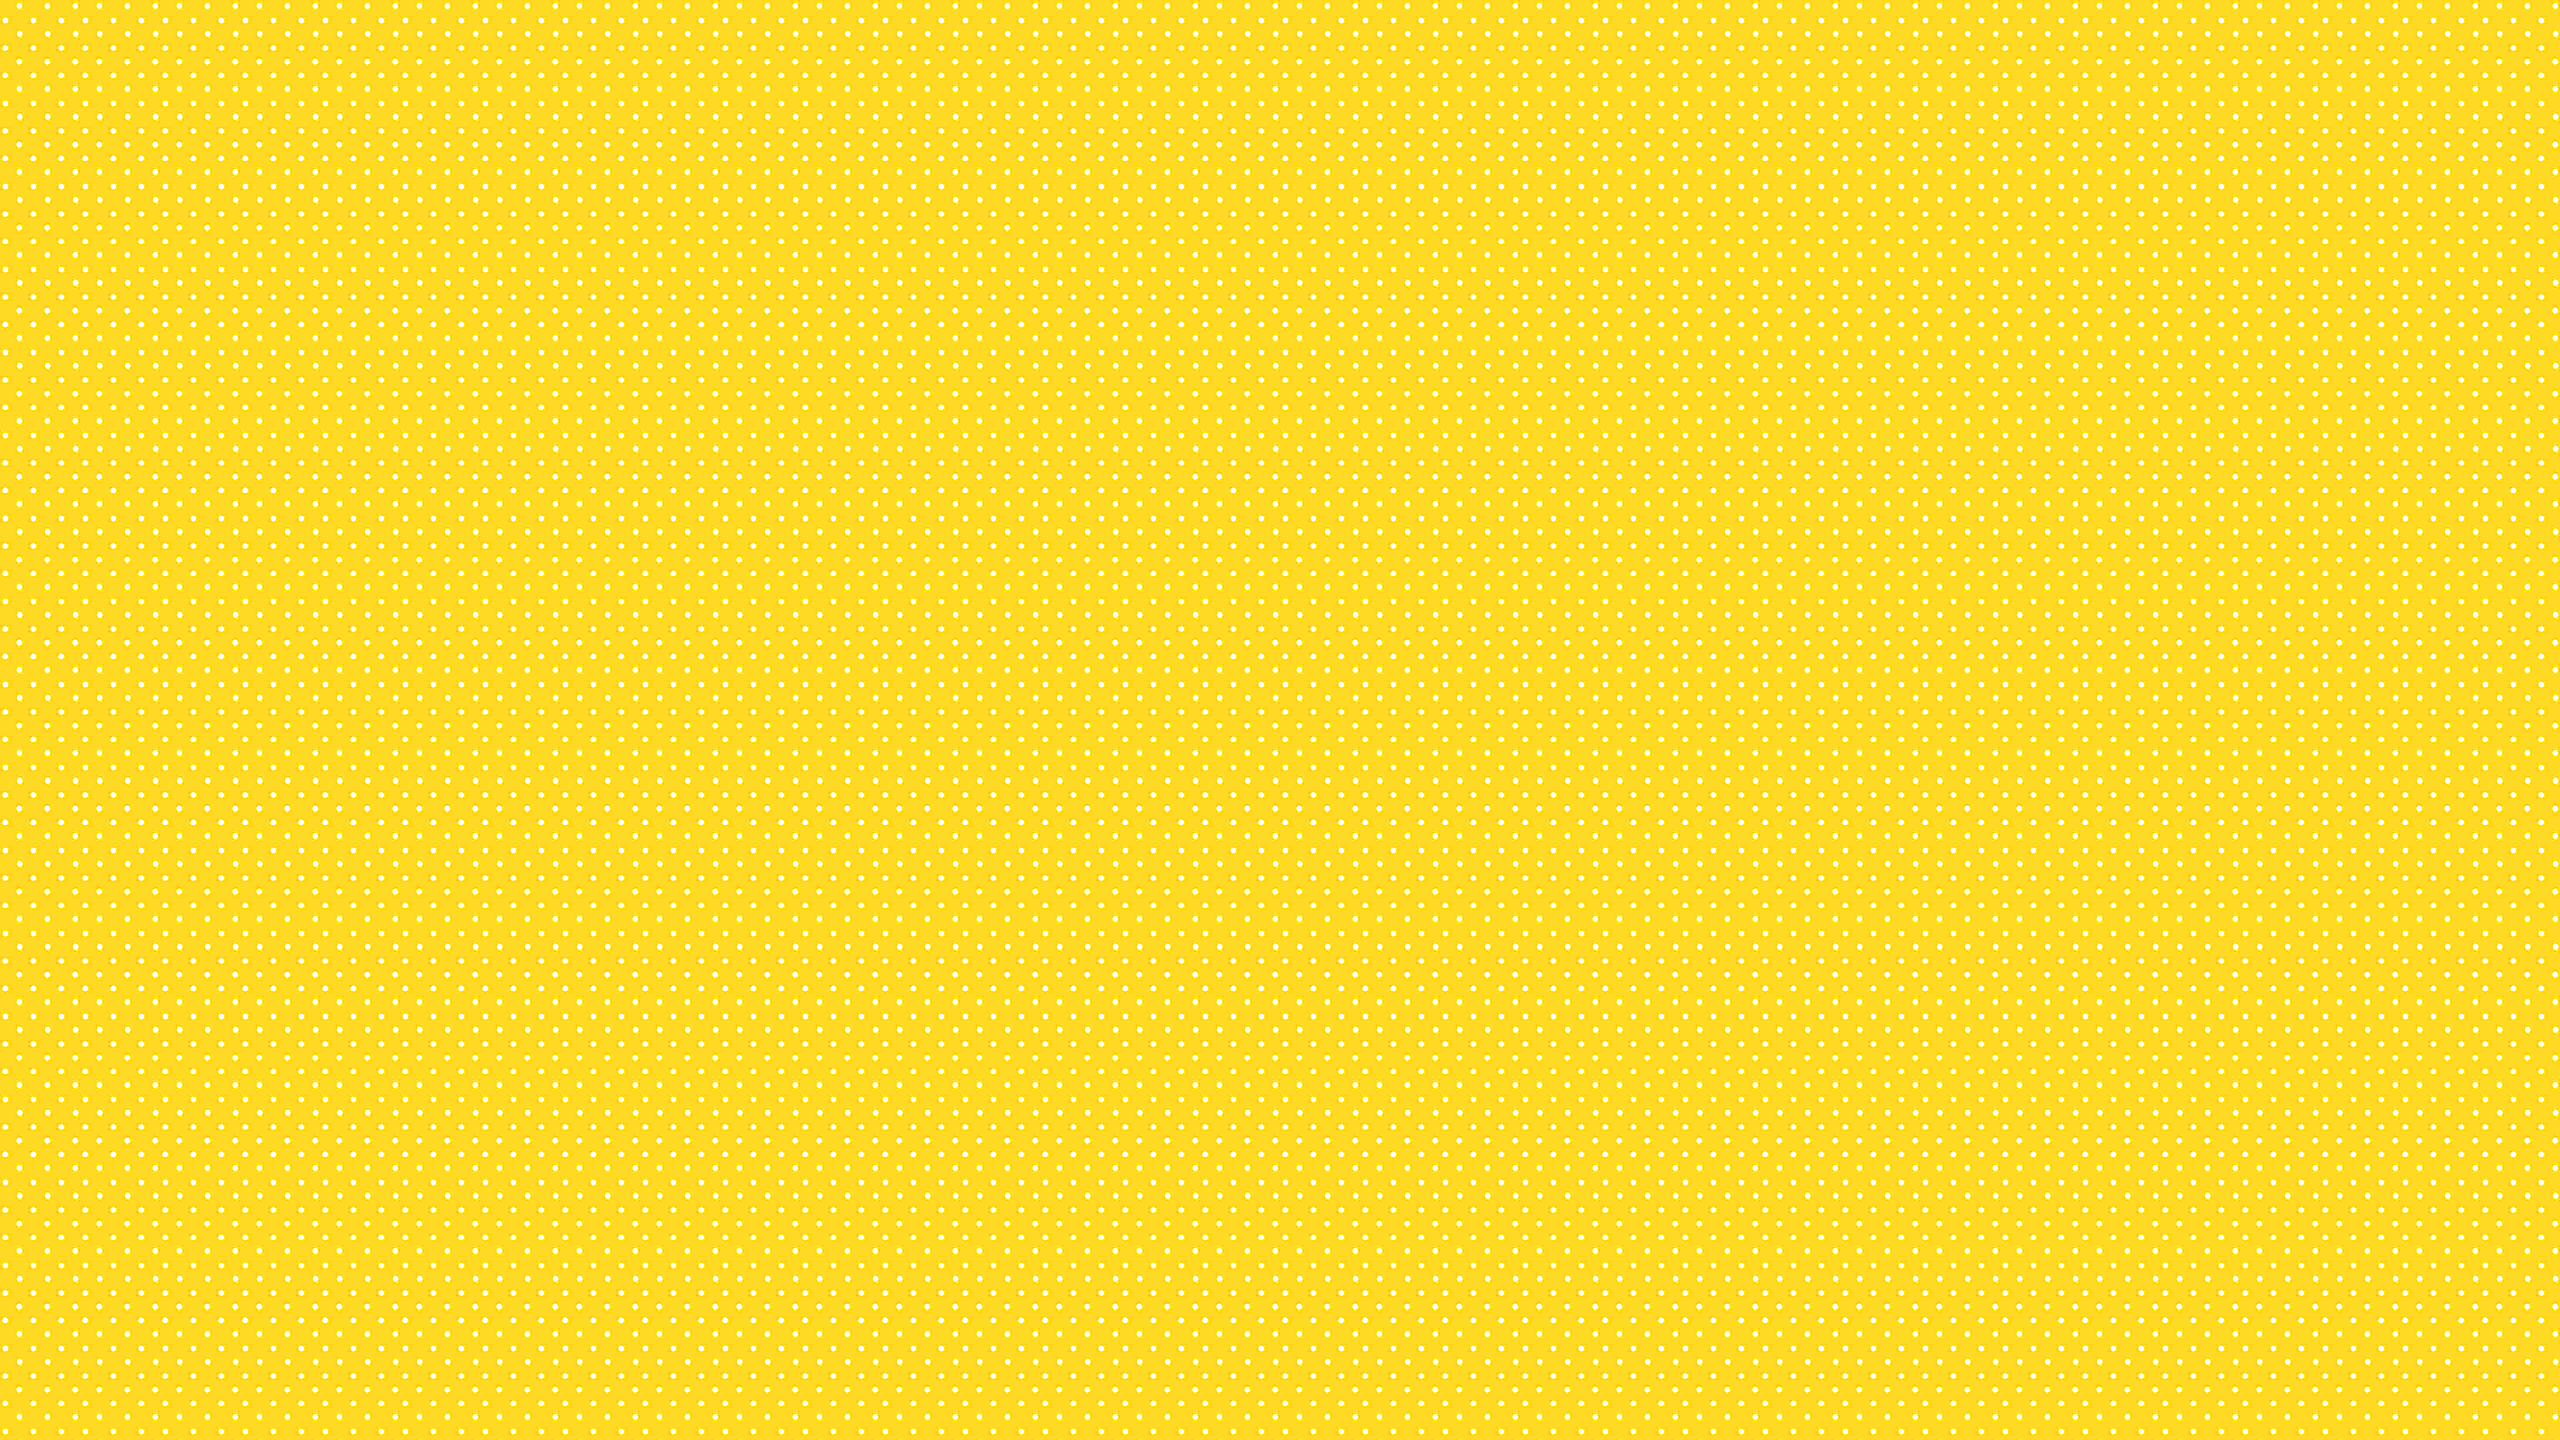 Http Www Wallpapersafari Com Yellow Desktop Backgrounds